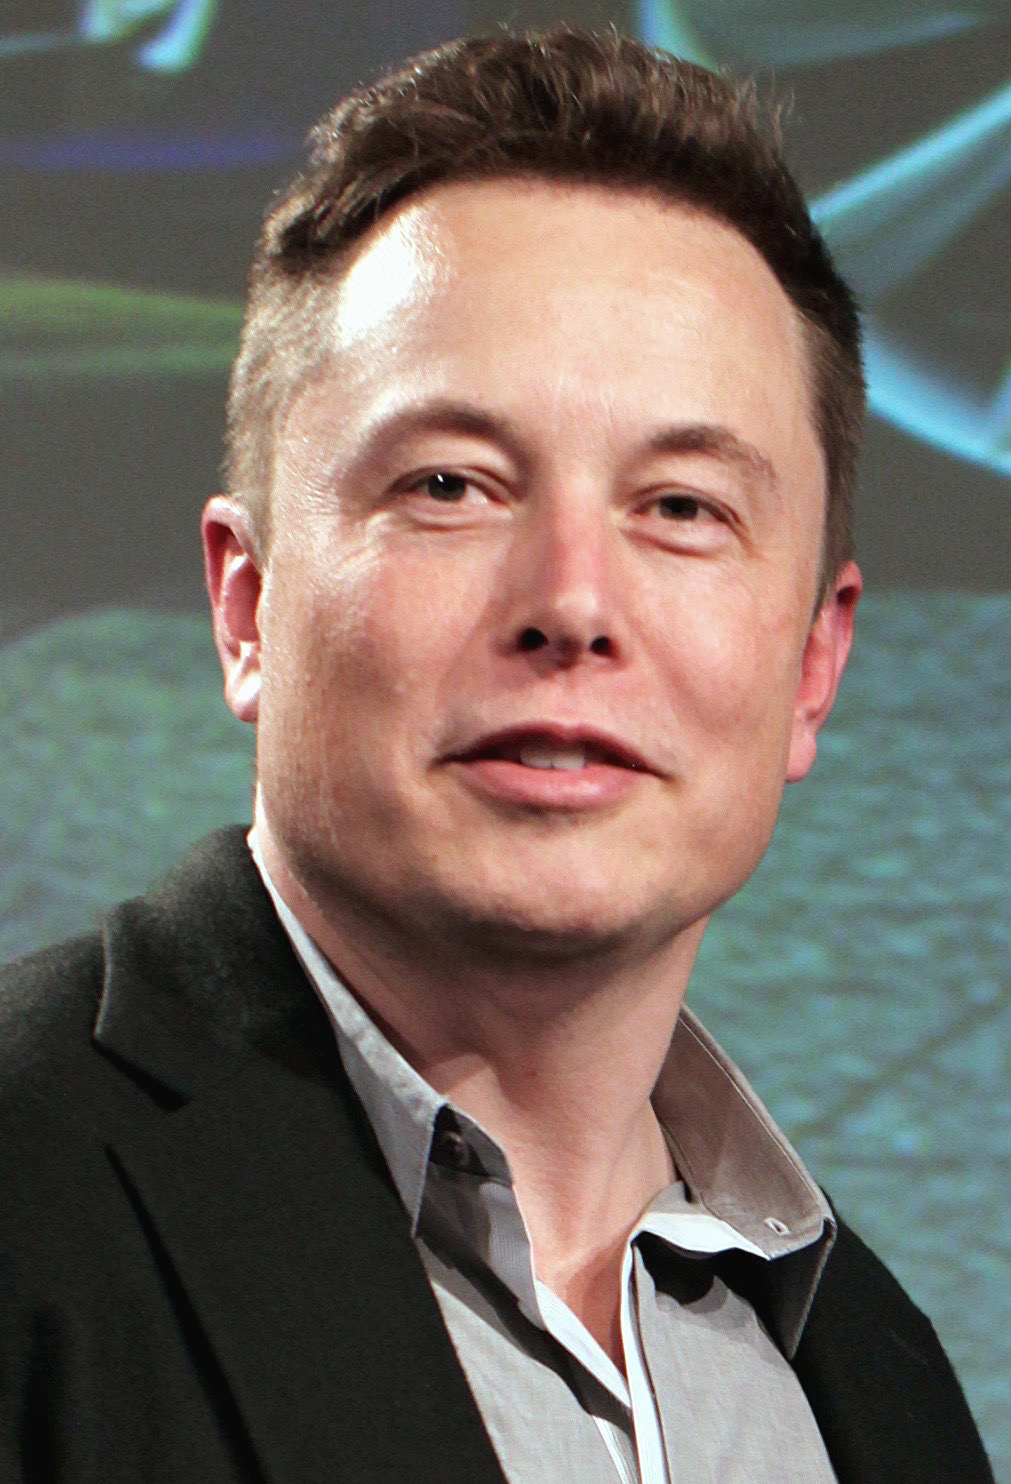 https://upload.wikimedia.org/wikipedia/commons/4/49/Elon_Musk_2015.jpg